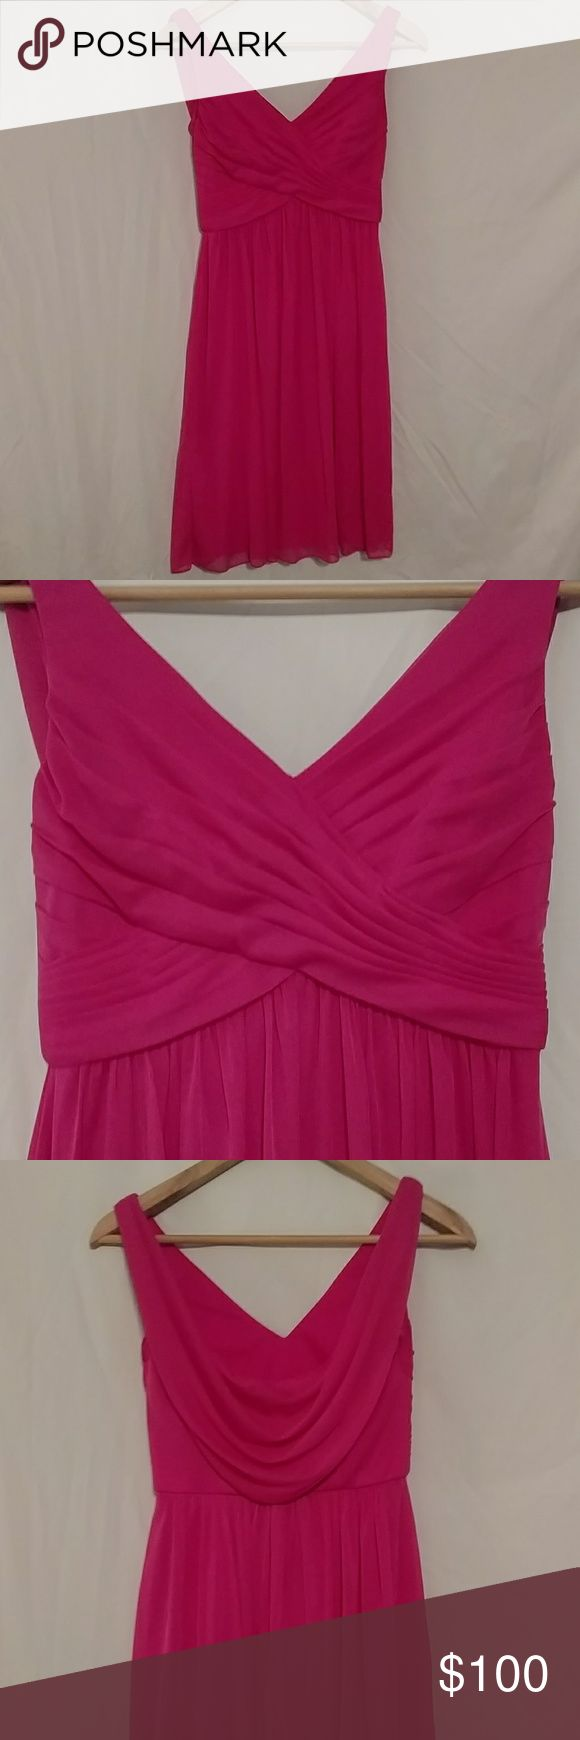 Bridesmaid dress Begonia colored knee length dress. Even hem at the bottom and pleasing fit at the waist when on. Back has a drape attached to cover the zipper. Front has a cross shape over the chest. Worn once David's Bridal Dresses Wedding